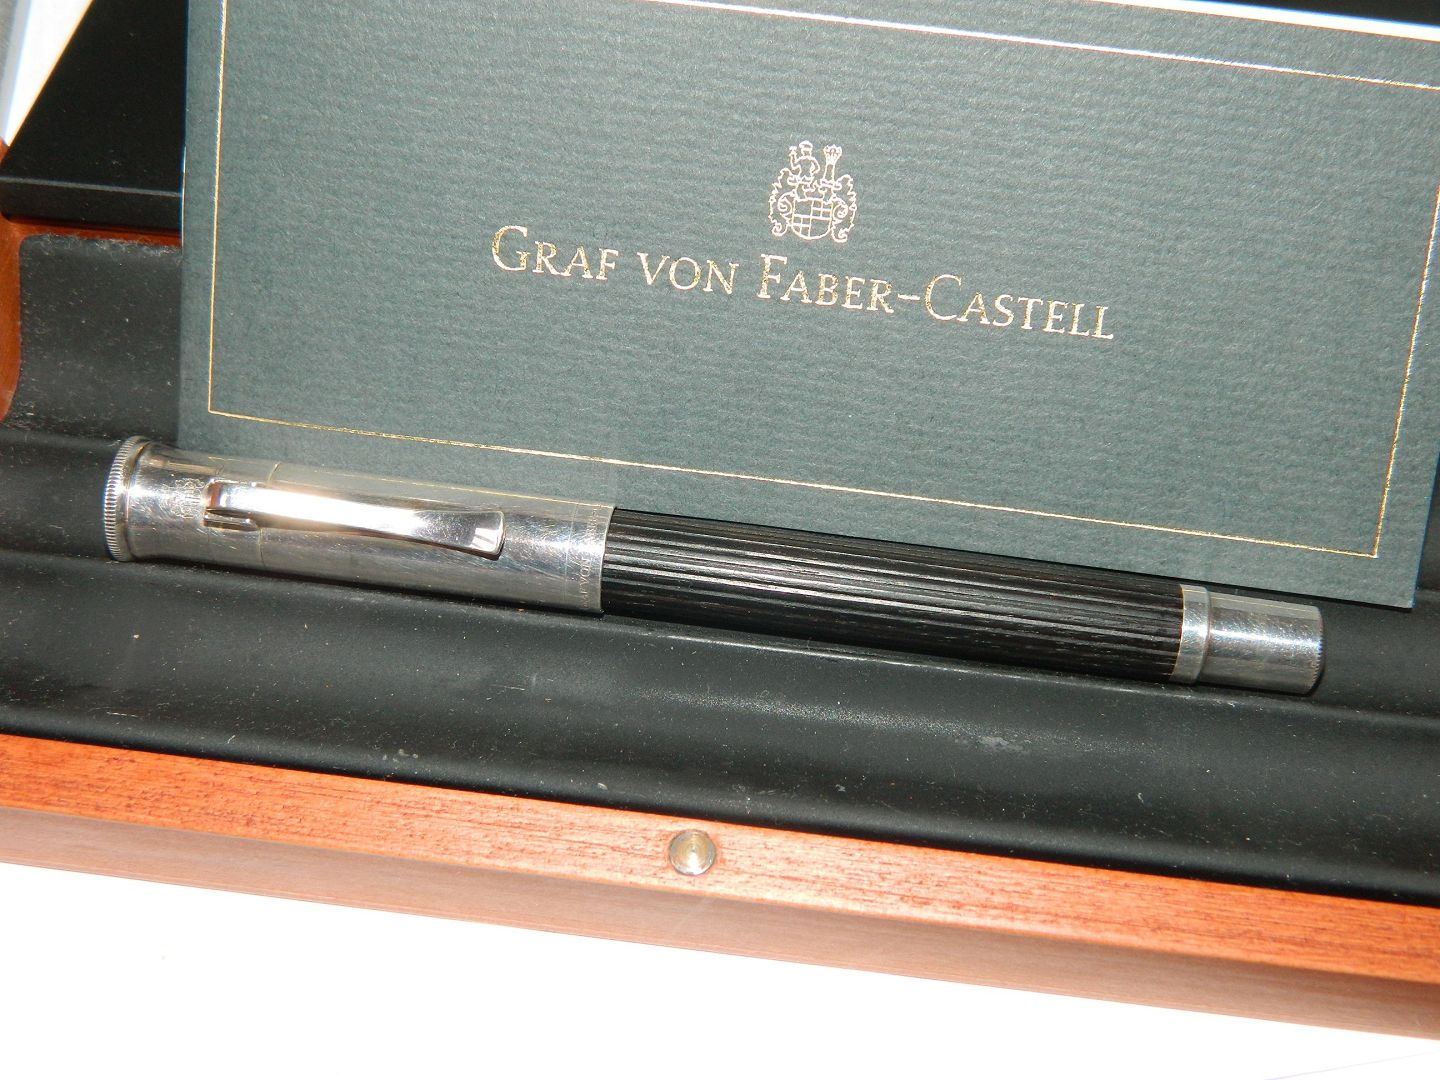 graf von faber castell fountain pen in grenadilla wood. Black Bedroom Furniture Sets. Home Design Ideas